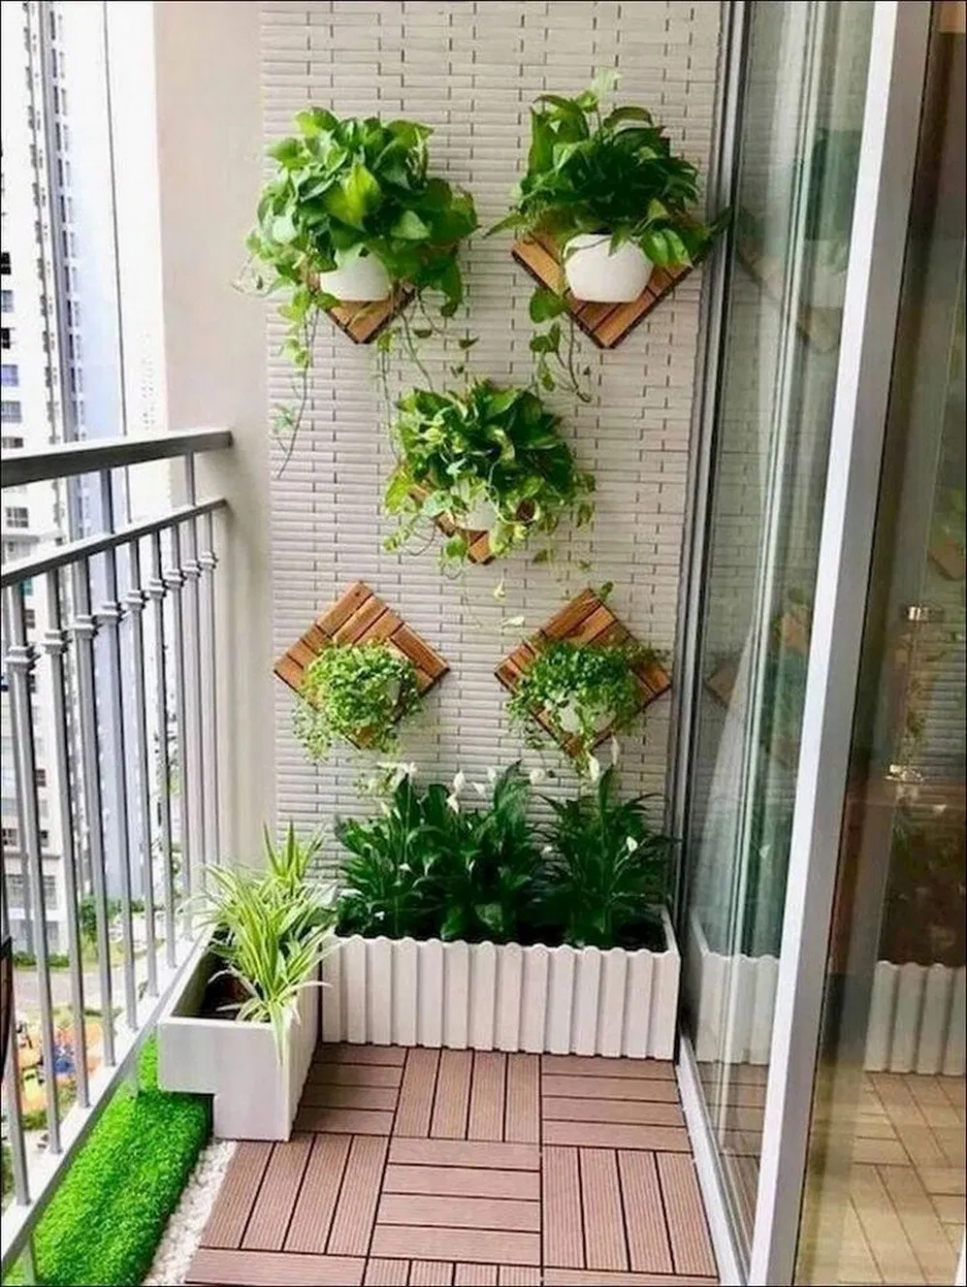 122 classy and simple apartment balcony decorating ideas 12 in 12 ..